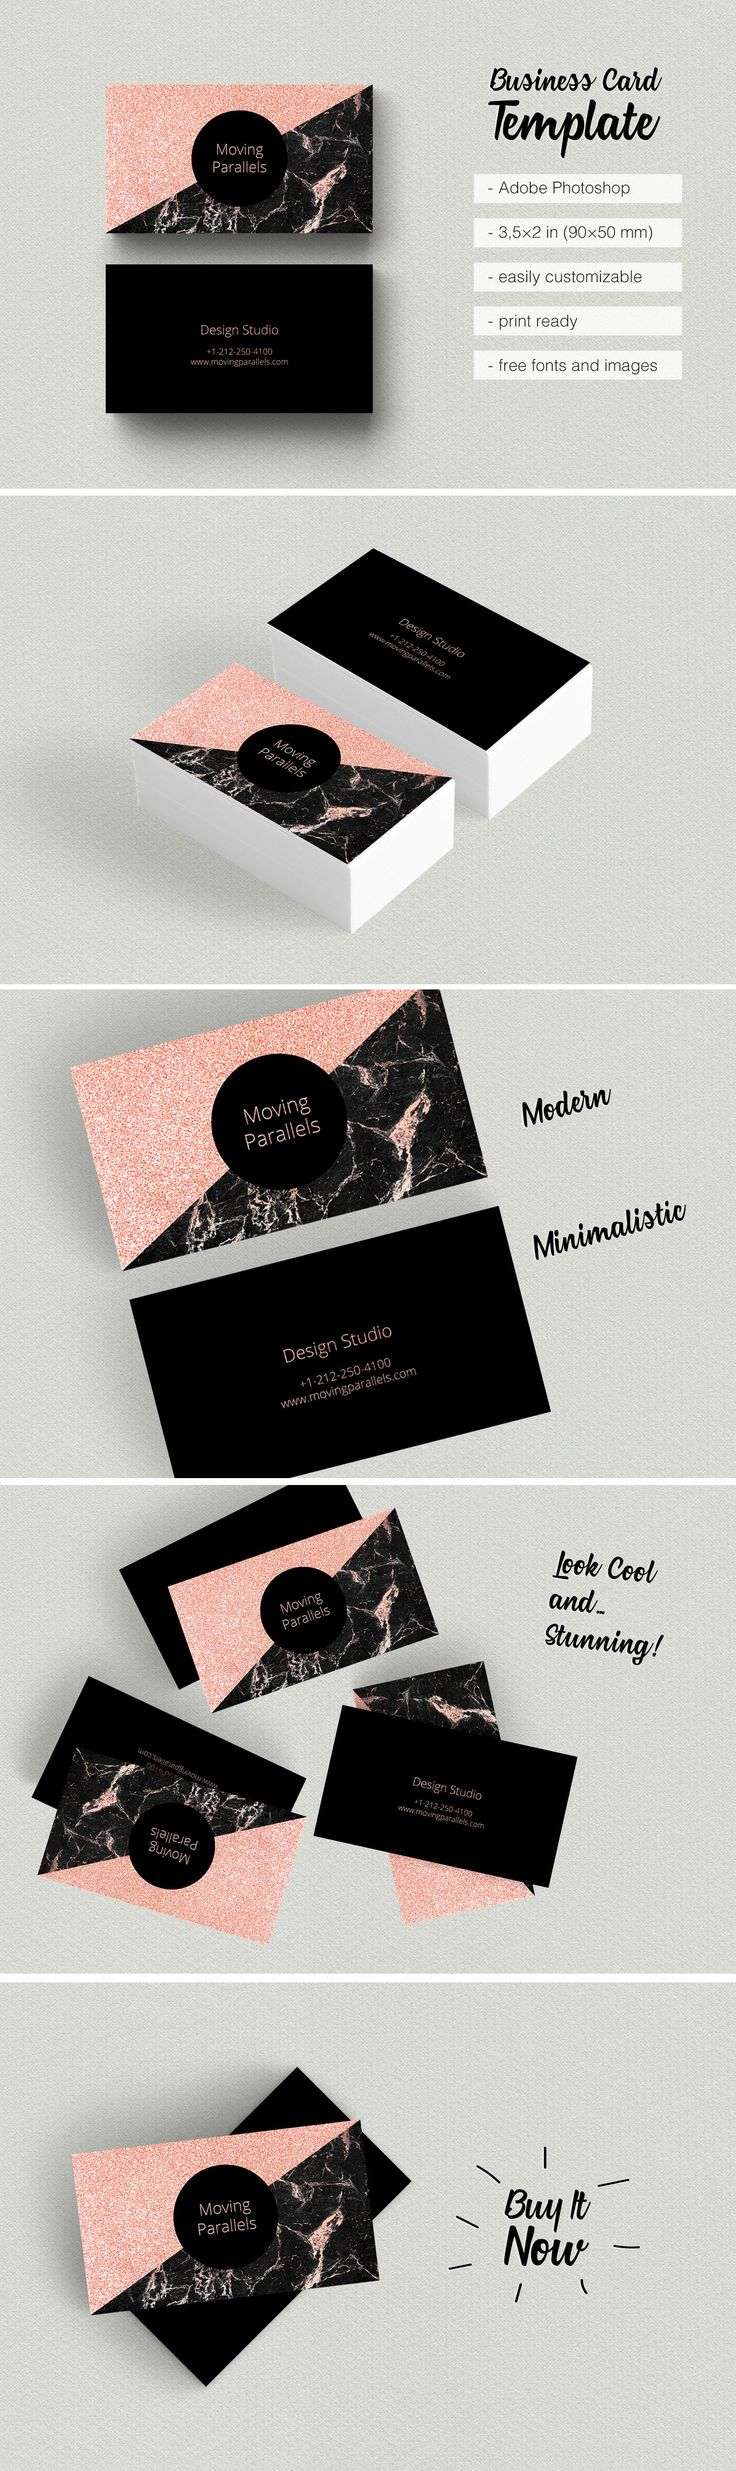 As 9365 melhores imagens em professional business cards no pinterest 8 rose gold business card etsy is classy sophisticated and elegant visiting card templates reheart Images